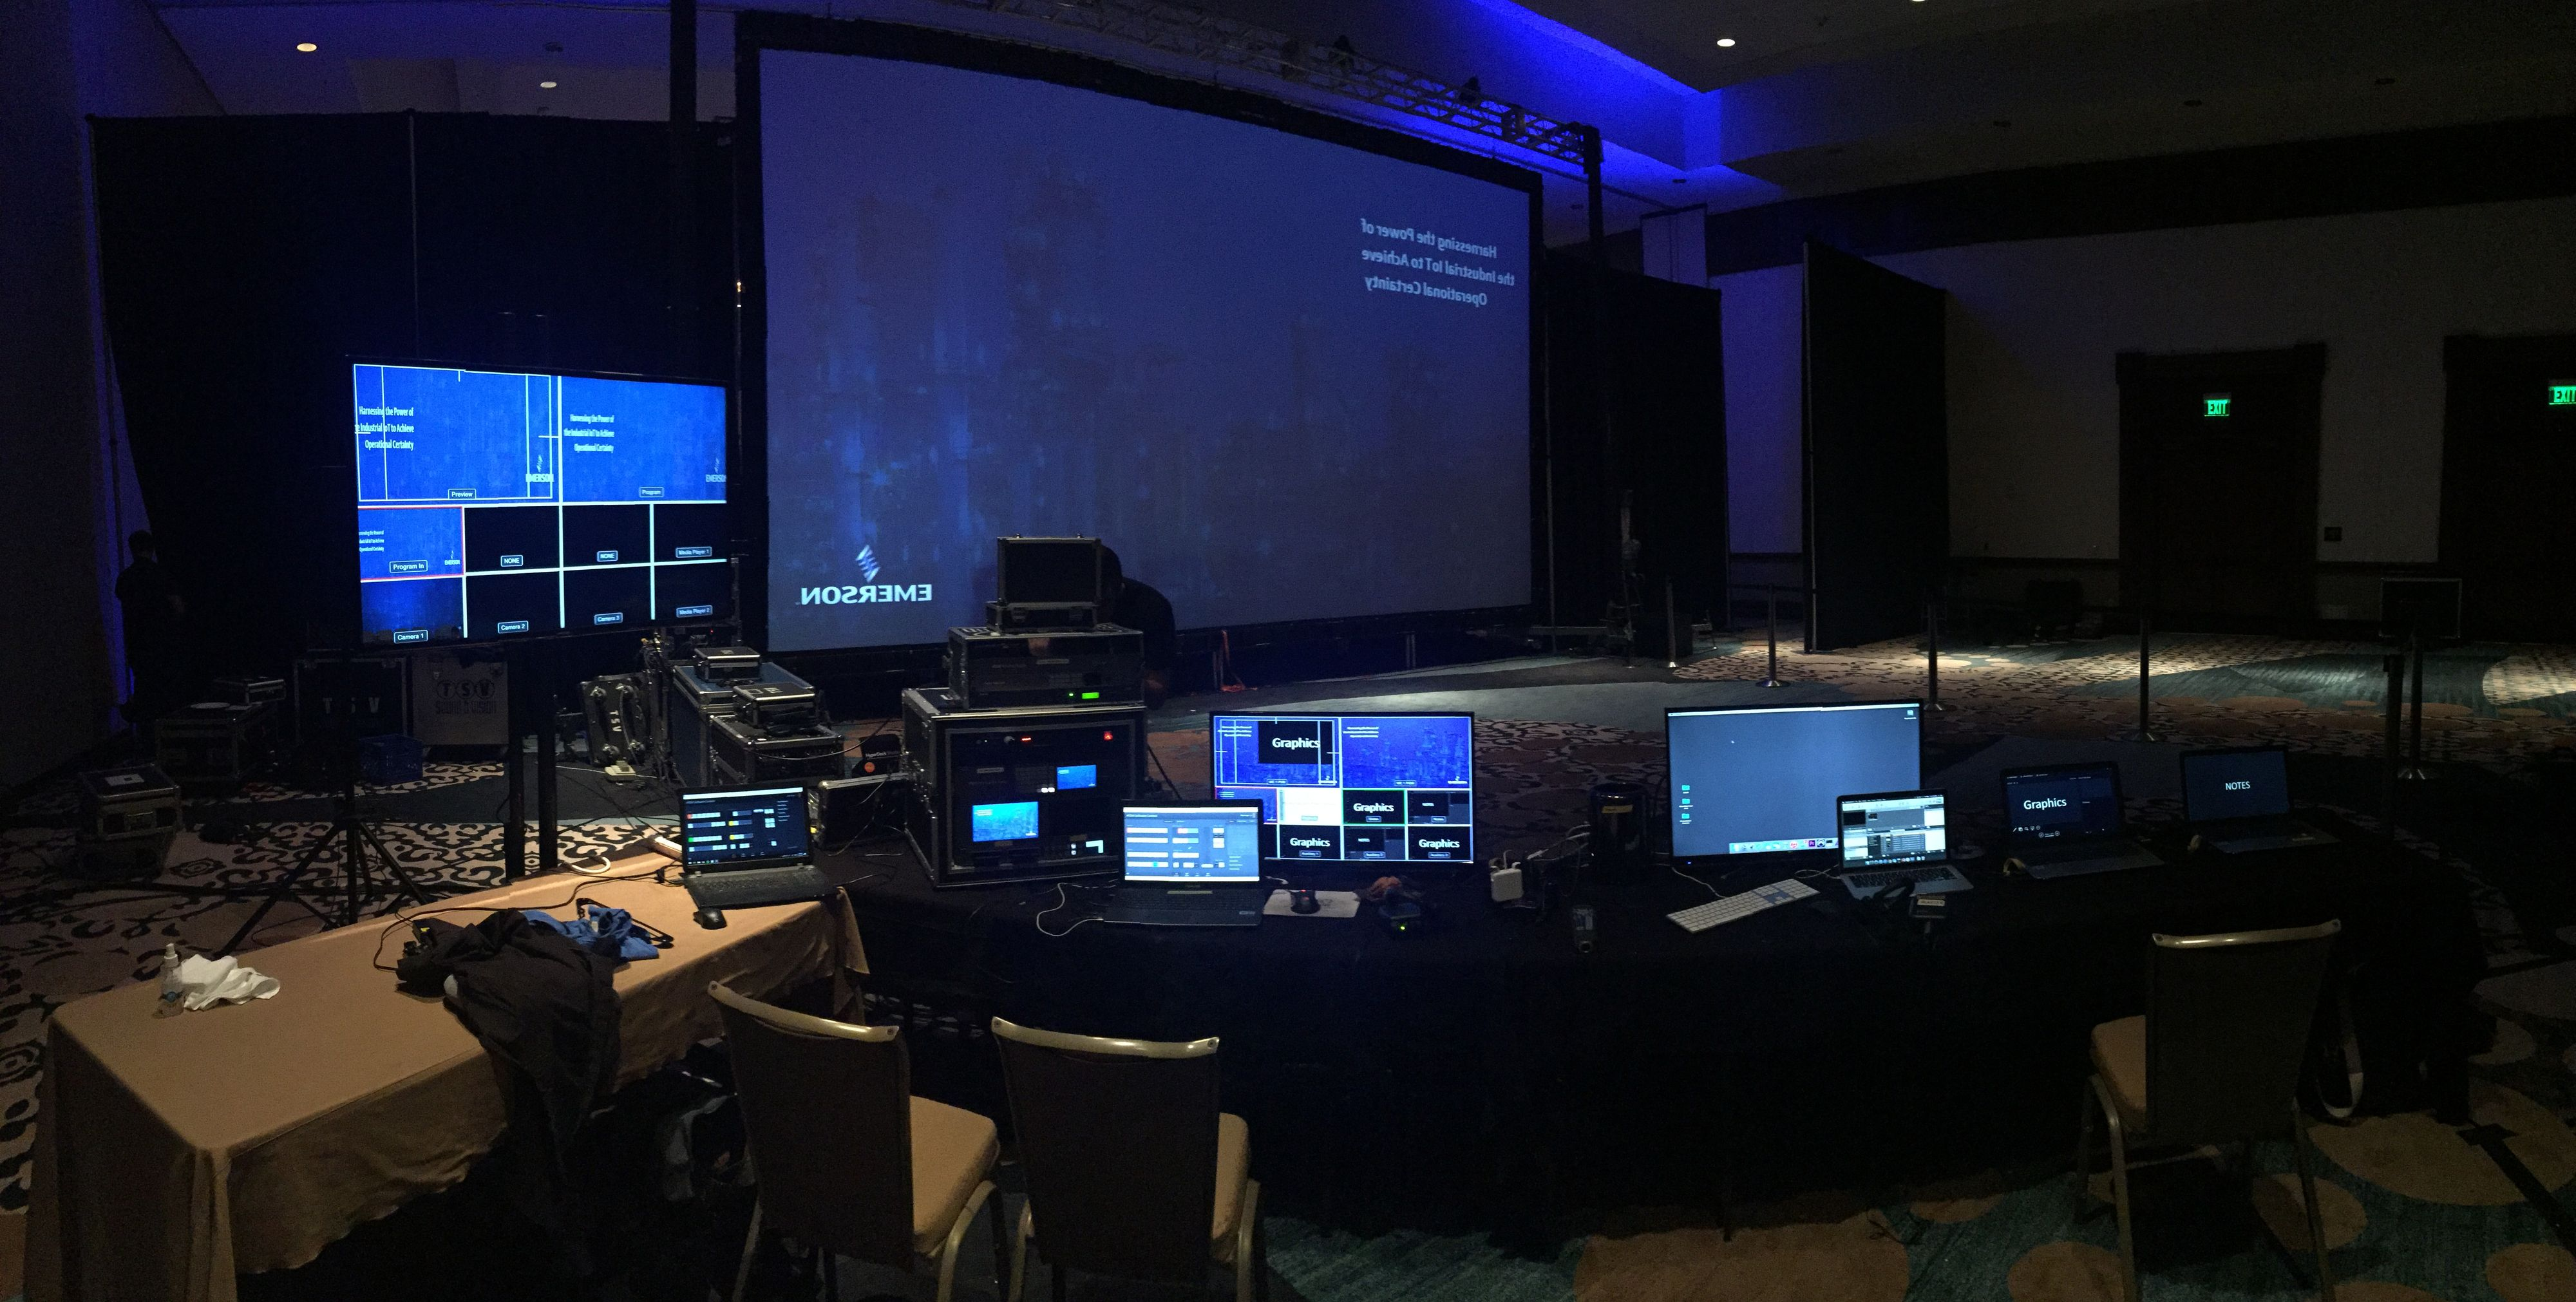 Video Village with video screens and switchers at event